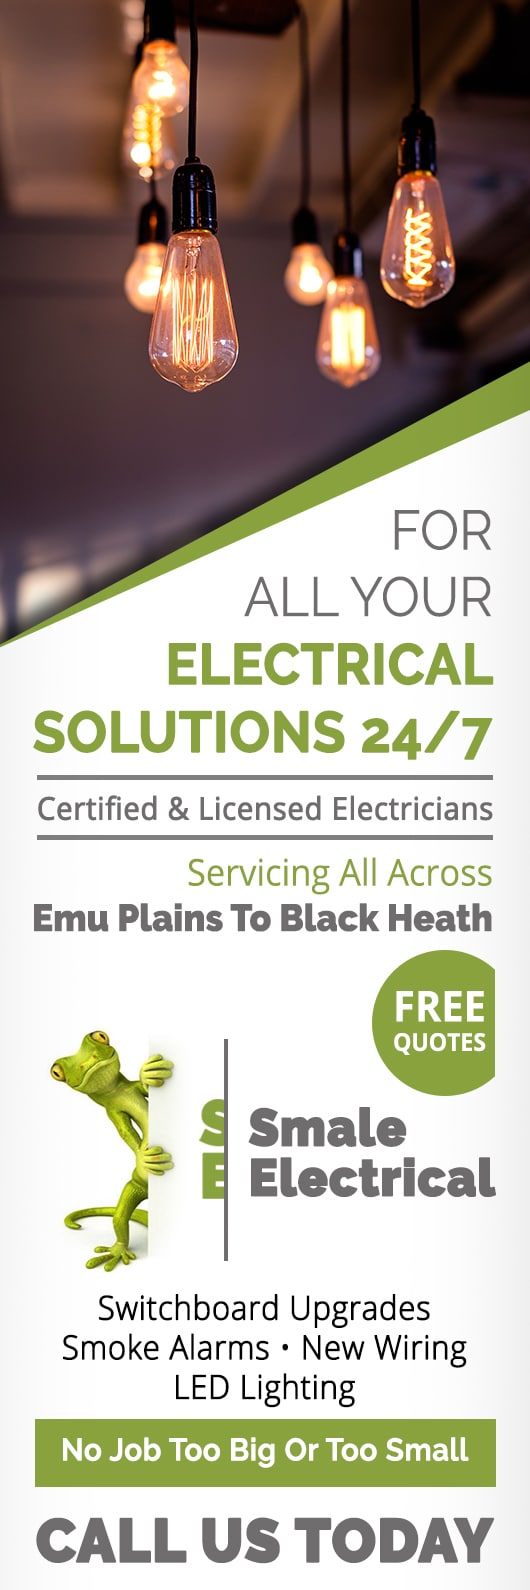 Smale Electrical Electricians Contractors Katoomba Switchboard Wiring Rules Promotion